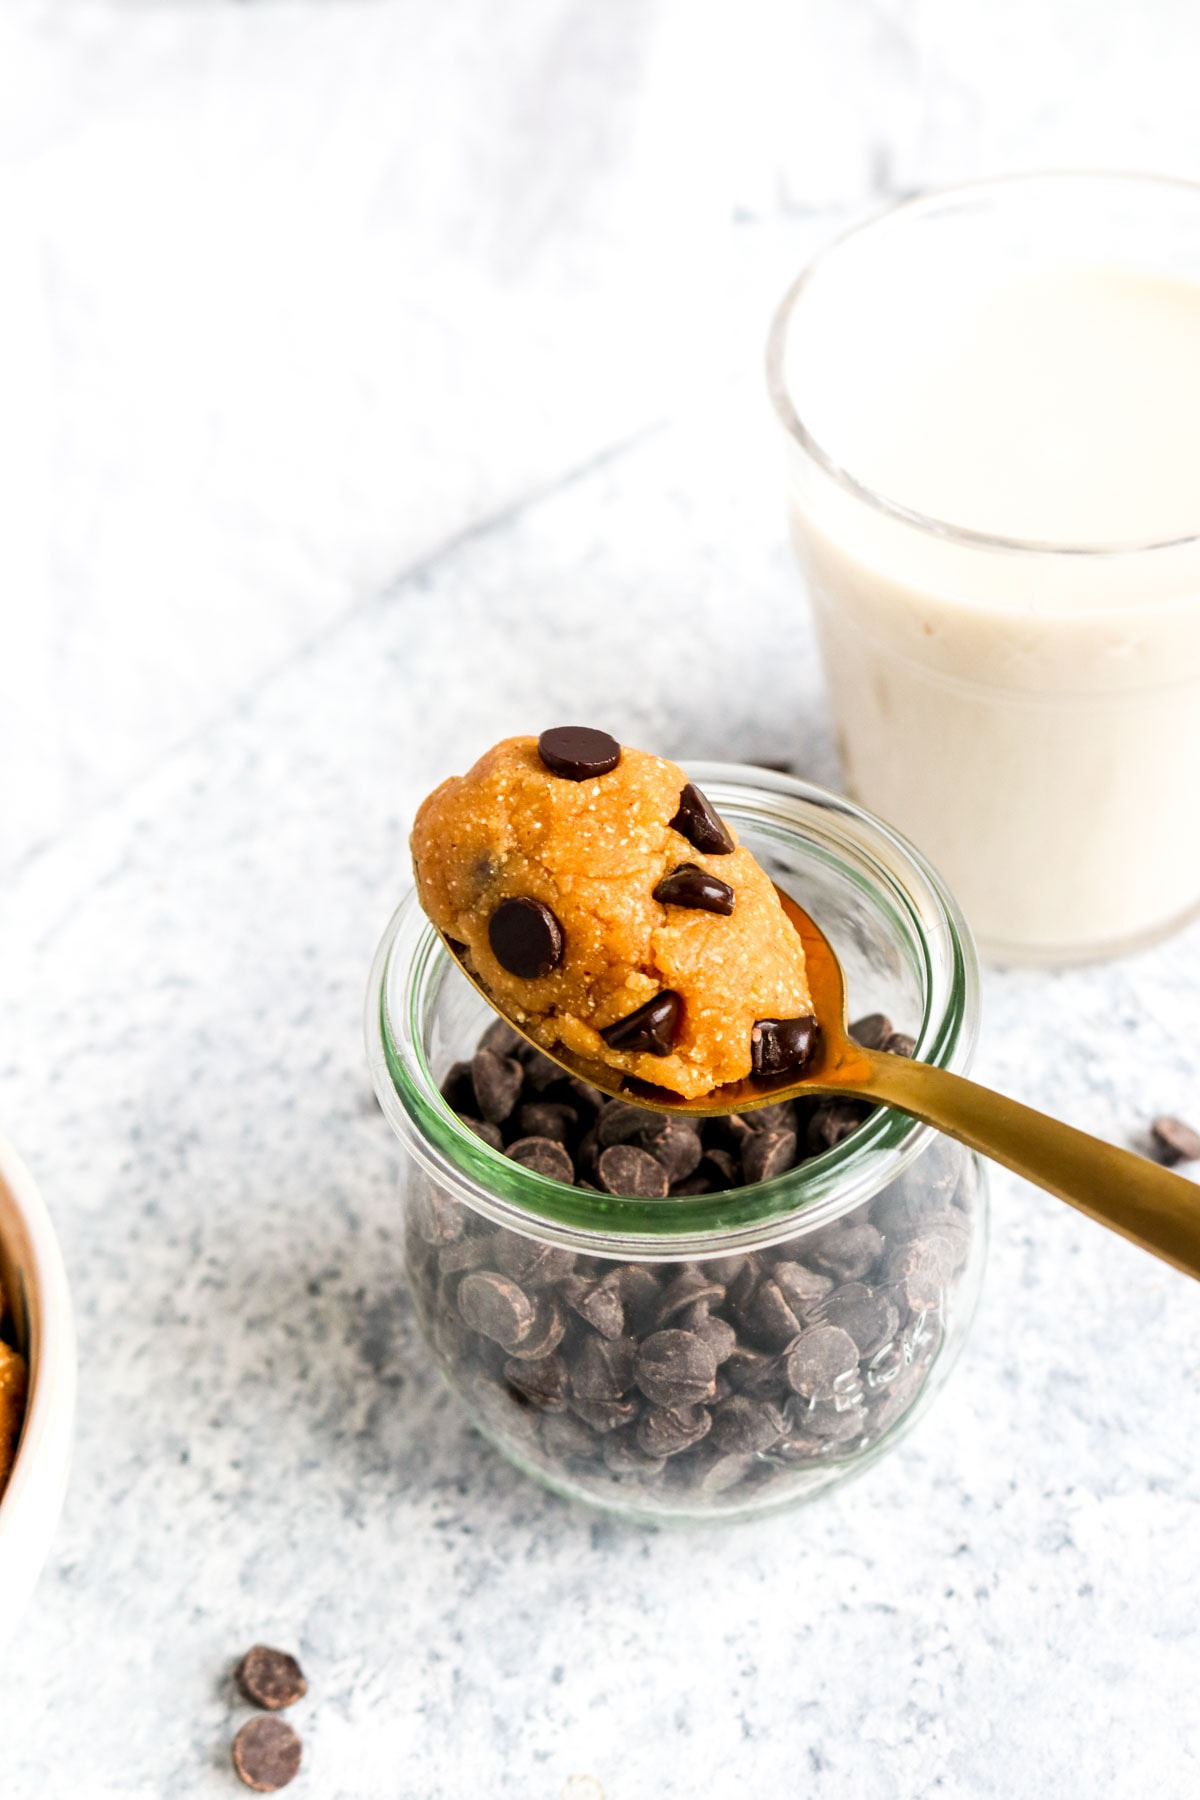 Edible grain free gookie dough on a spoon with chocolate chips.